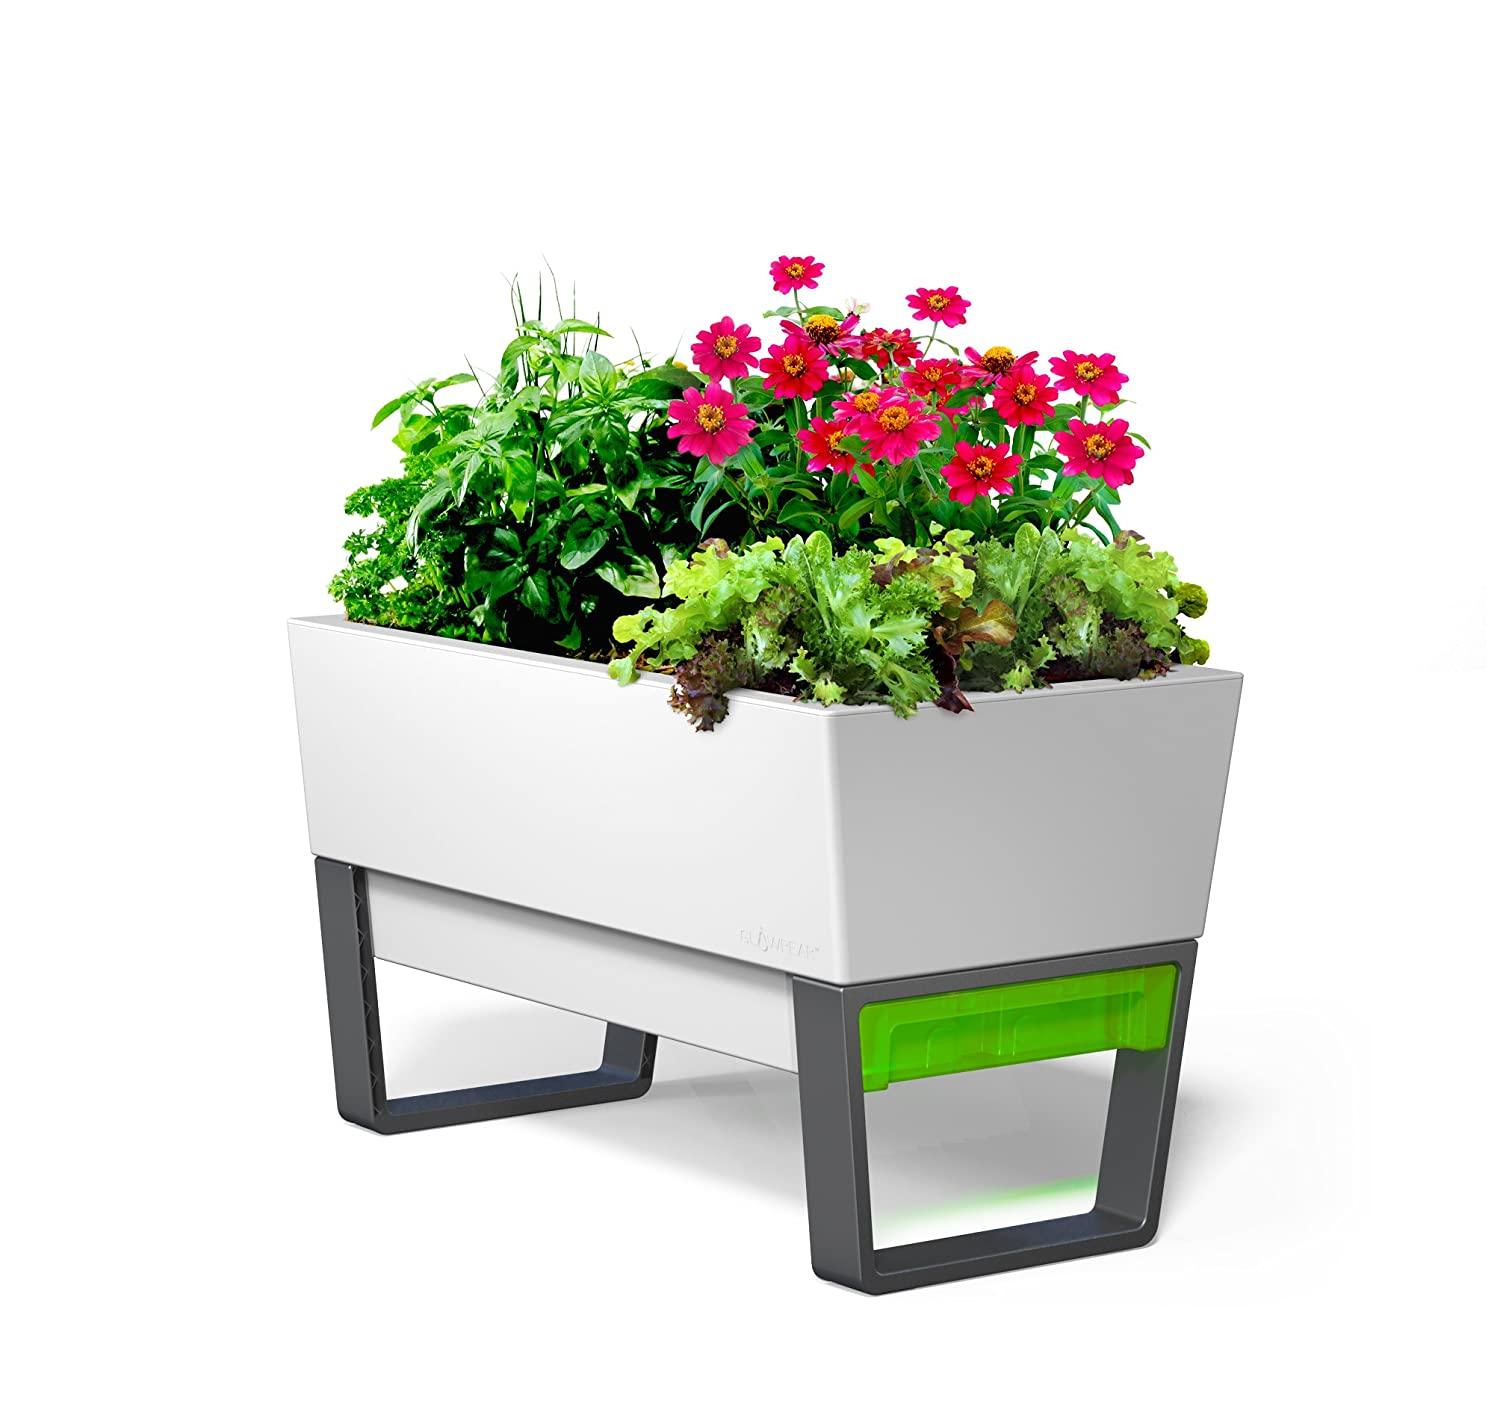 Amazoncom GlowPear Urban Garden Self Watering Mini Bench